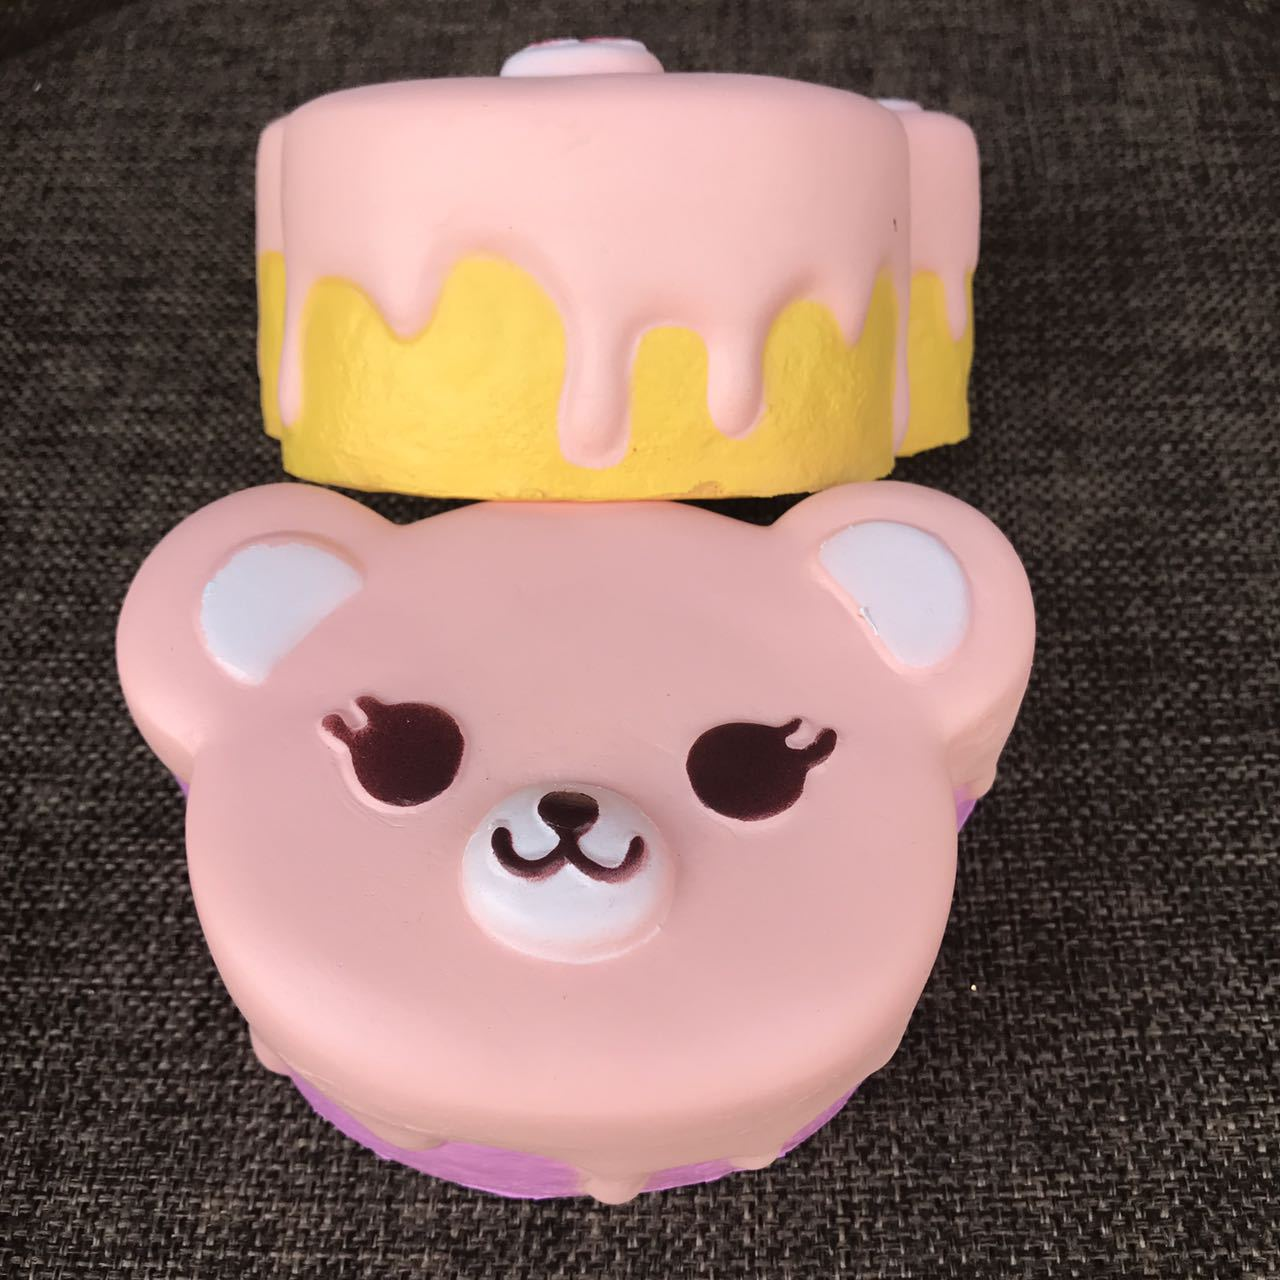 Smile Face Panda Head Cake Squishy Slow Rising Cute Jumbo Soft Squeeze Cream Scented Bread Straps Kid Fun Soft Doll Gift P20